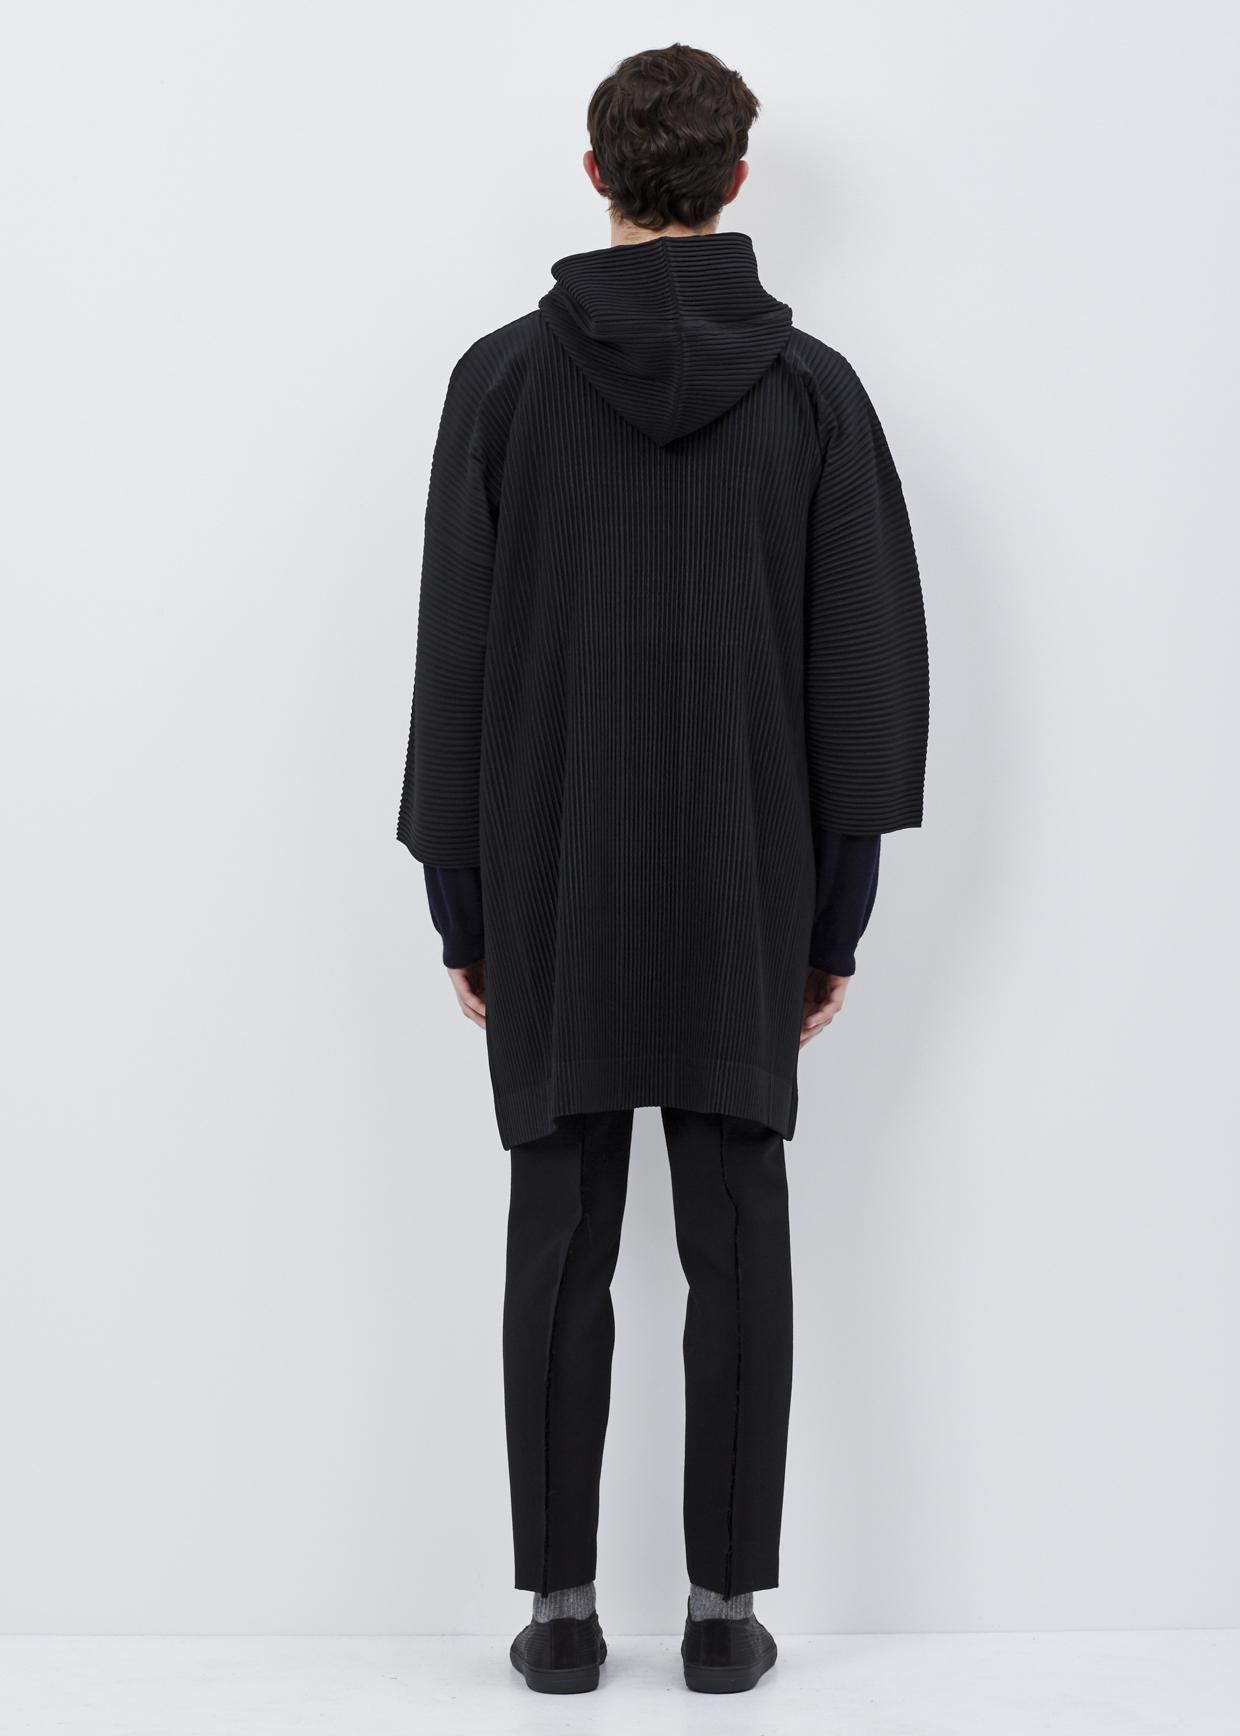 lyst homme pliss issey miyake black shawl collar hoodie in black for men. Black Bedroom Furniture Sets. Home Design Ideas